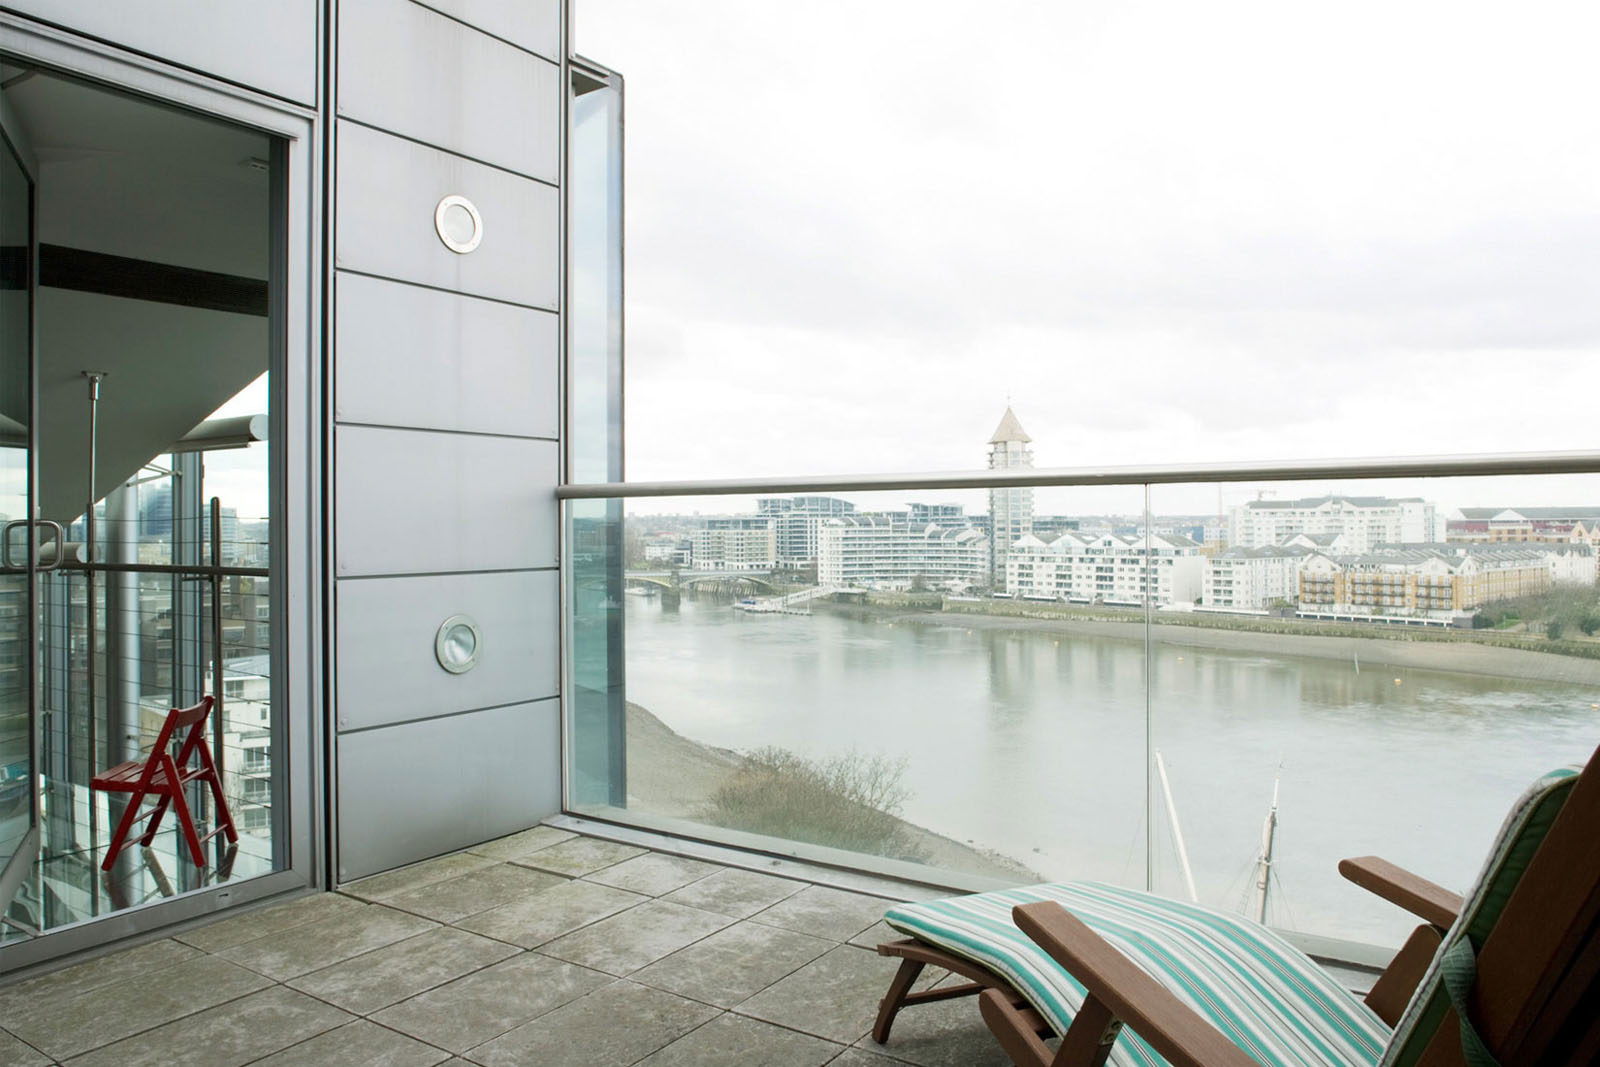 Glass Penthouse In London By The Thames IDesignArch Interior Design Architecture Amp Interior